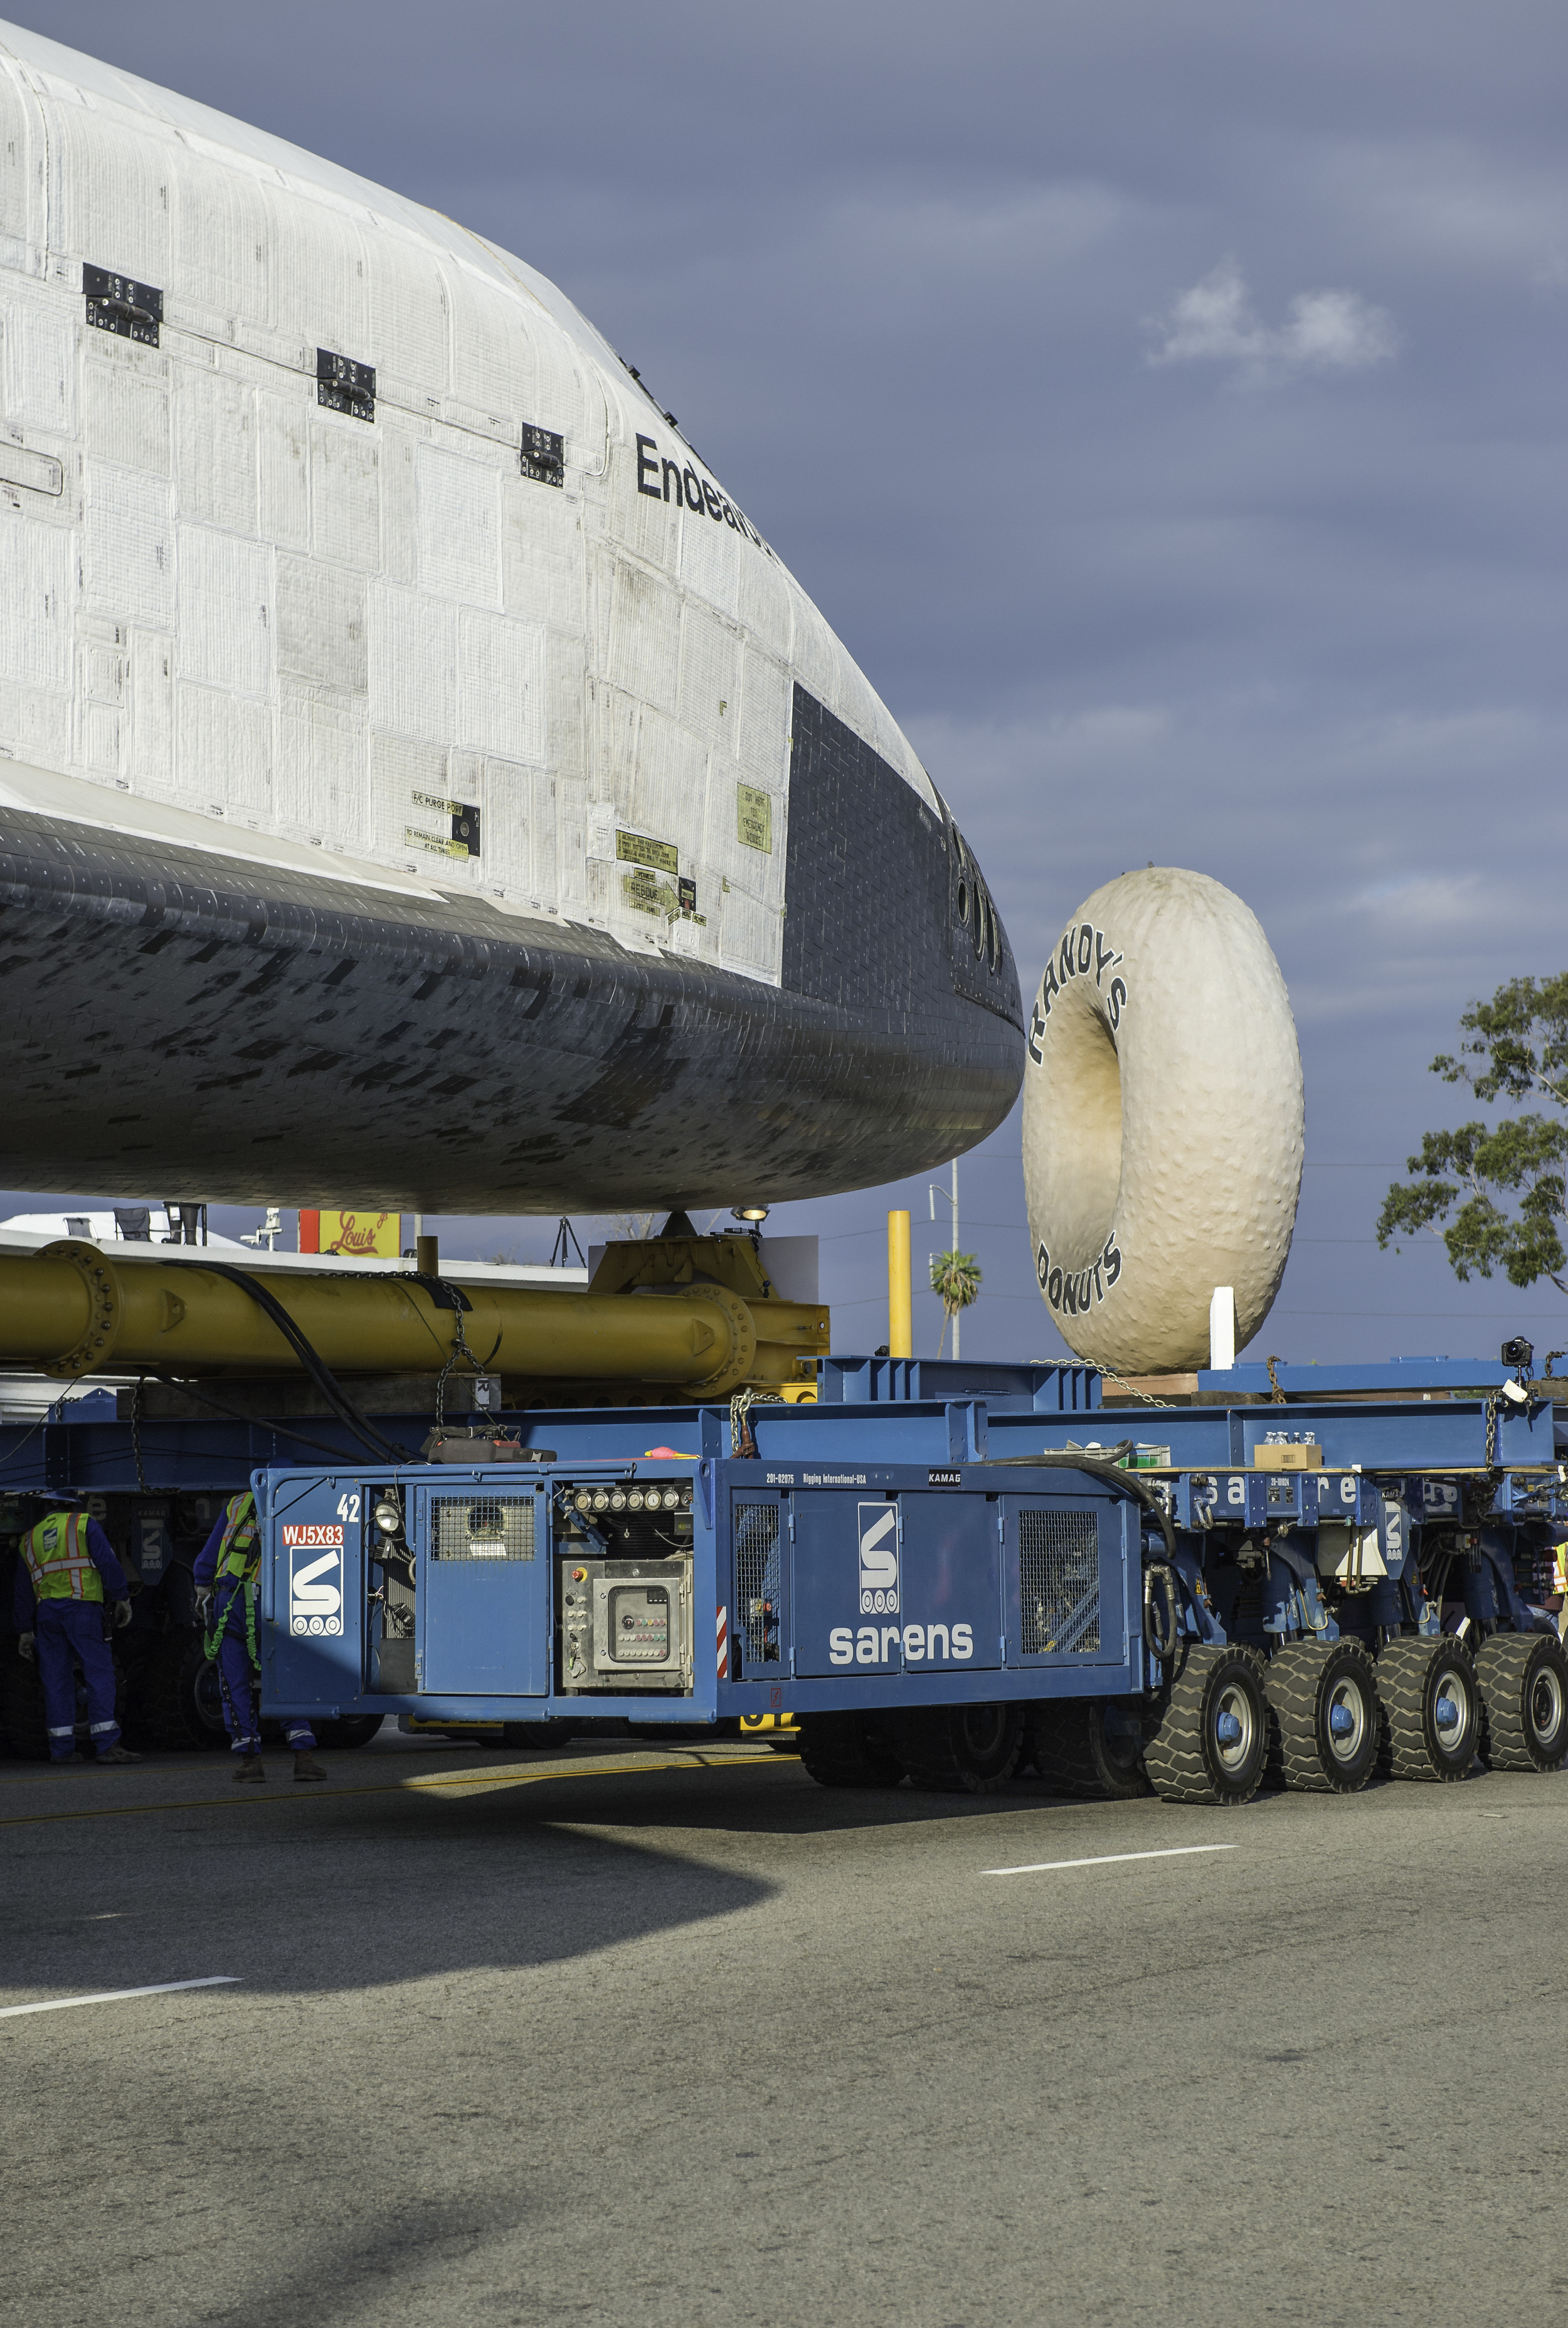 The nose cone of the space shuttle Endeavour is seen next to the Randy's Donuts landmark in Inglewood, California, Friday, Oct. 12, 2012. Endeavour, built as a replacement for space shuttle Challenger, completed 25 missions, spent 299 days in orbit, and orbited Earth 4,671 times while traveling 122,883,151 miles. Beginning Oct. 30, the shuttle will be on display in the CSC's Samuel Oschin Space Shuttle Endeavour Display Pavilion, embarking on its new mission to commemorate past achievements in space and educate and inspire future generations of explorers. (NASA/Carla Cioffi)